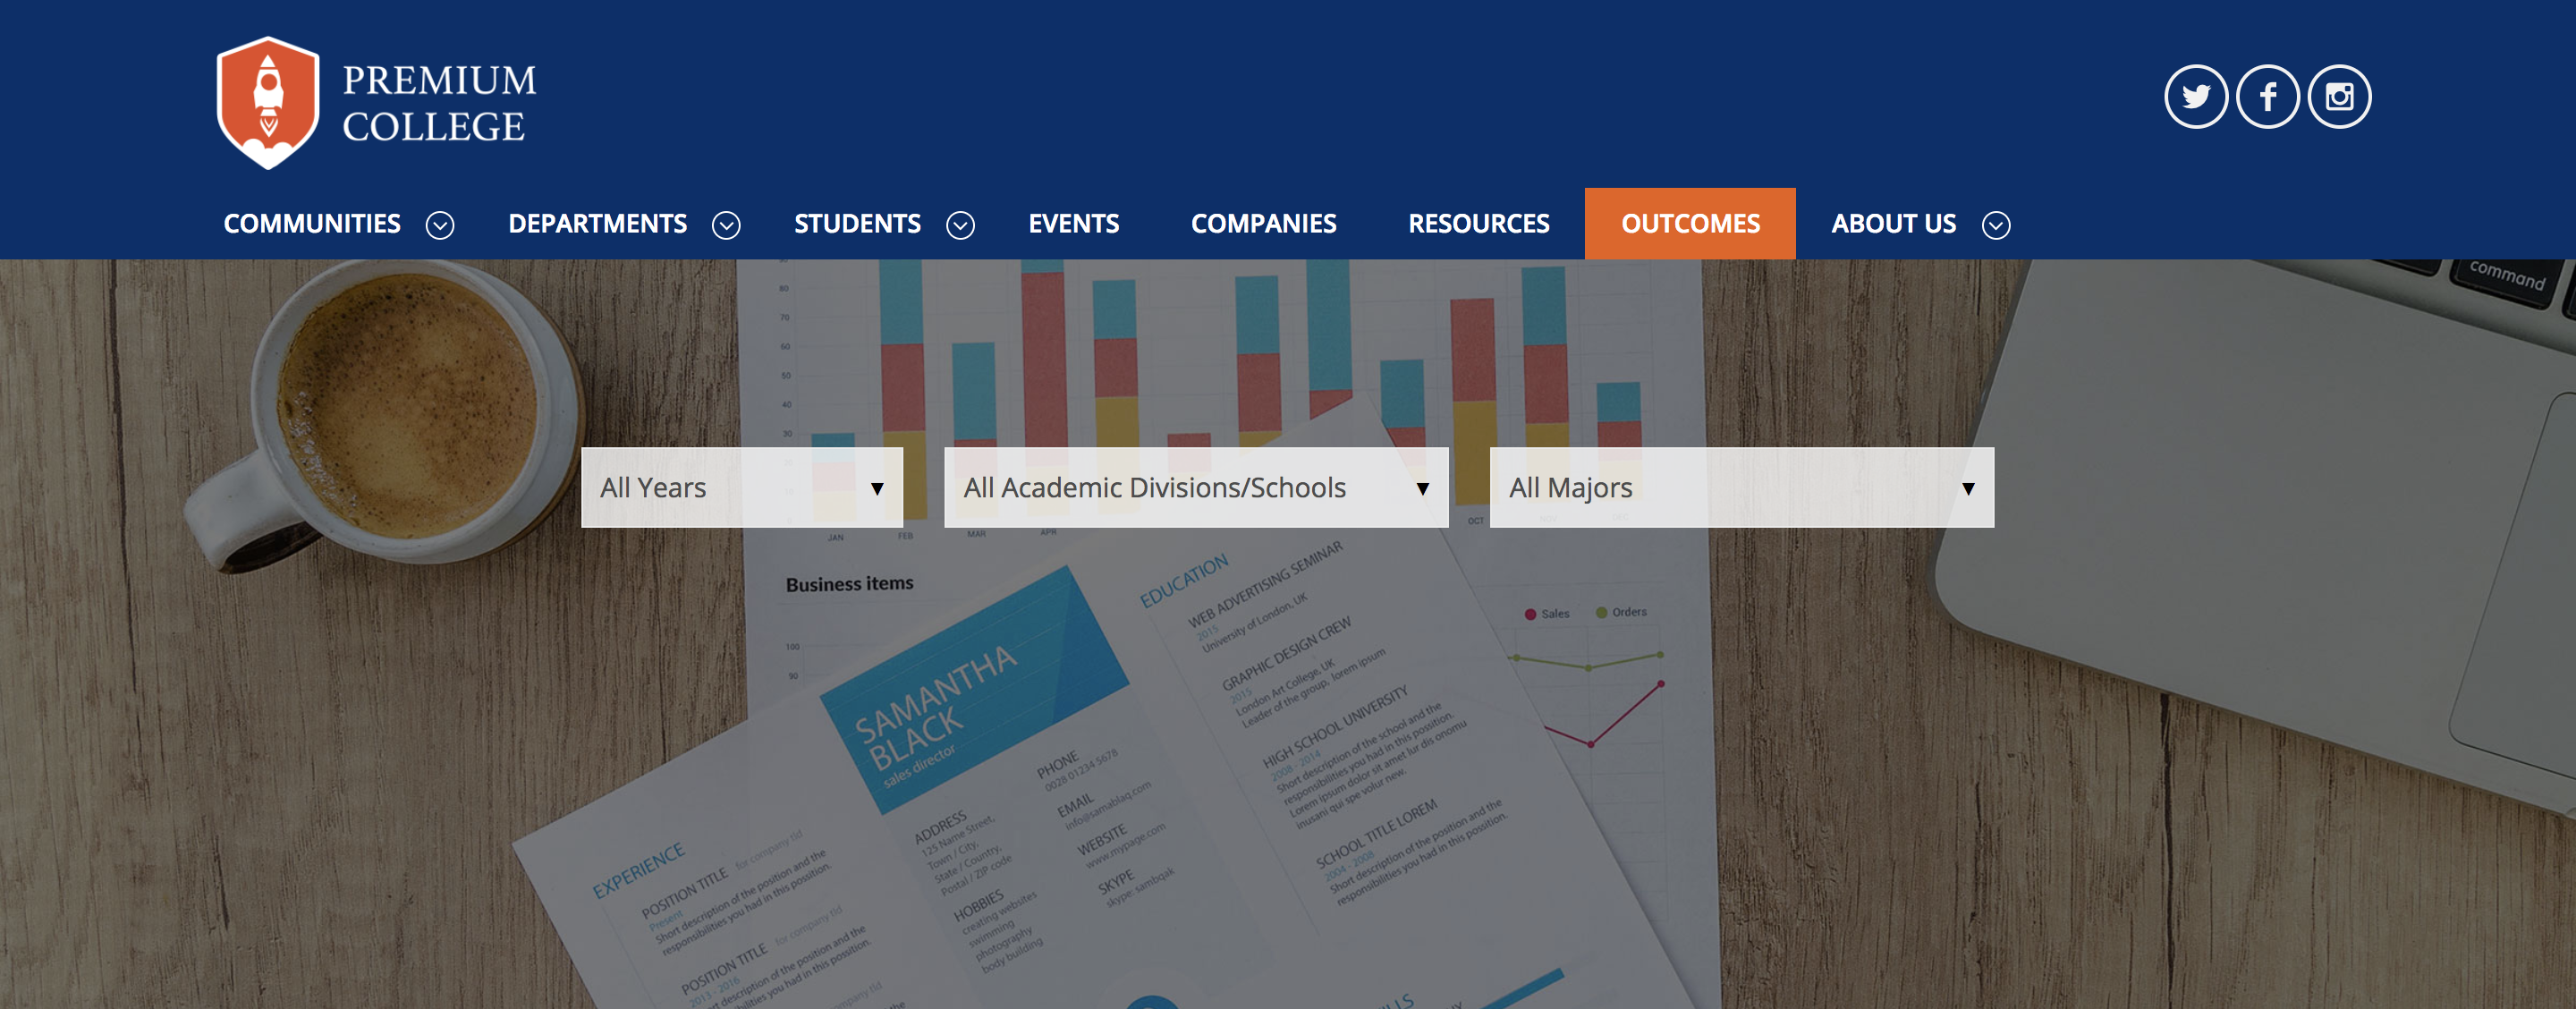 Shining a Light on Student Outcomes: Announcing Our New Outcome Data Visualization Tool